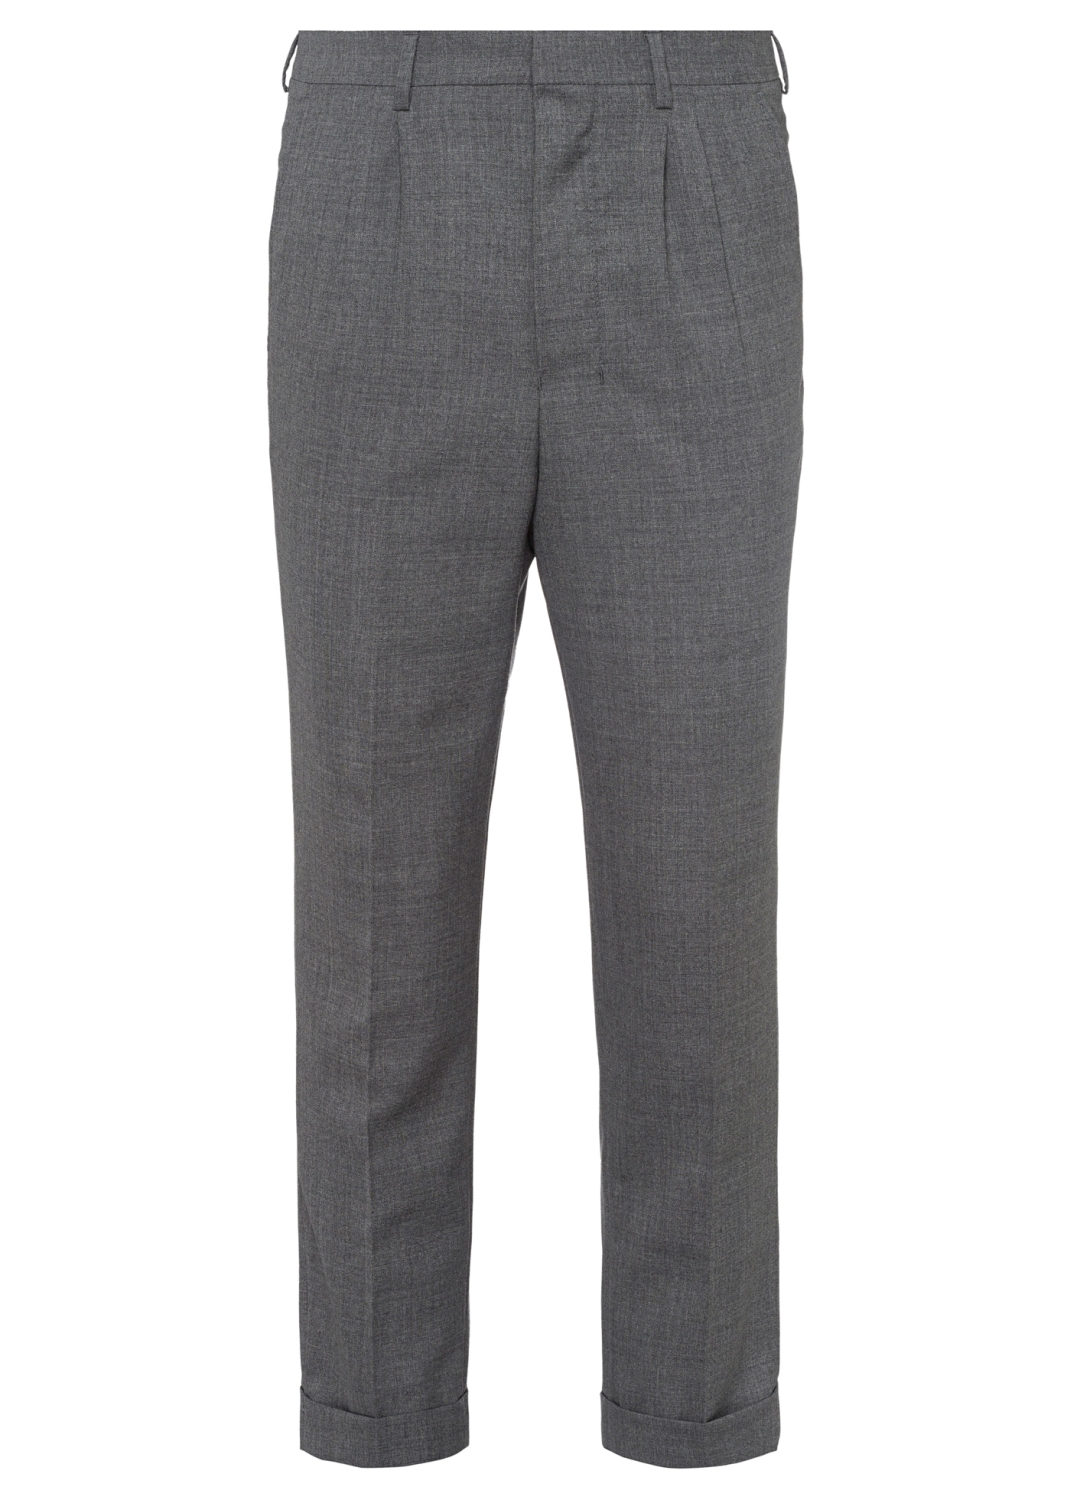 MEN PLEATED CARROT FIT TROUSERS image number 0